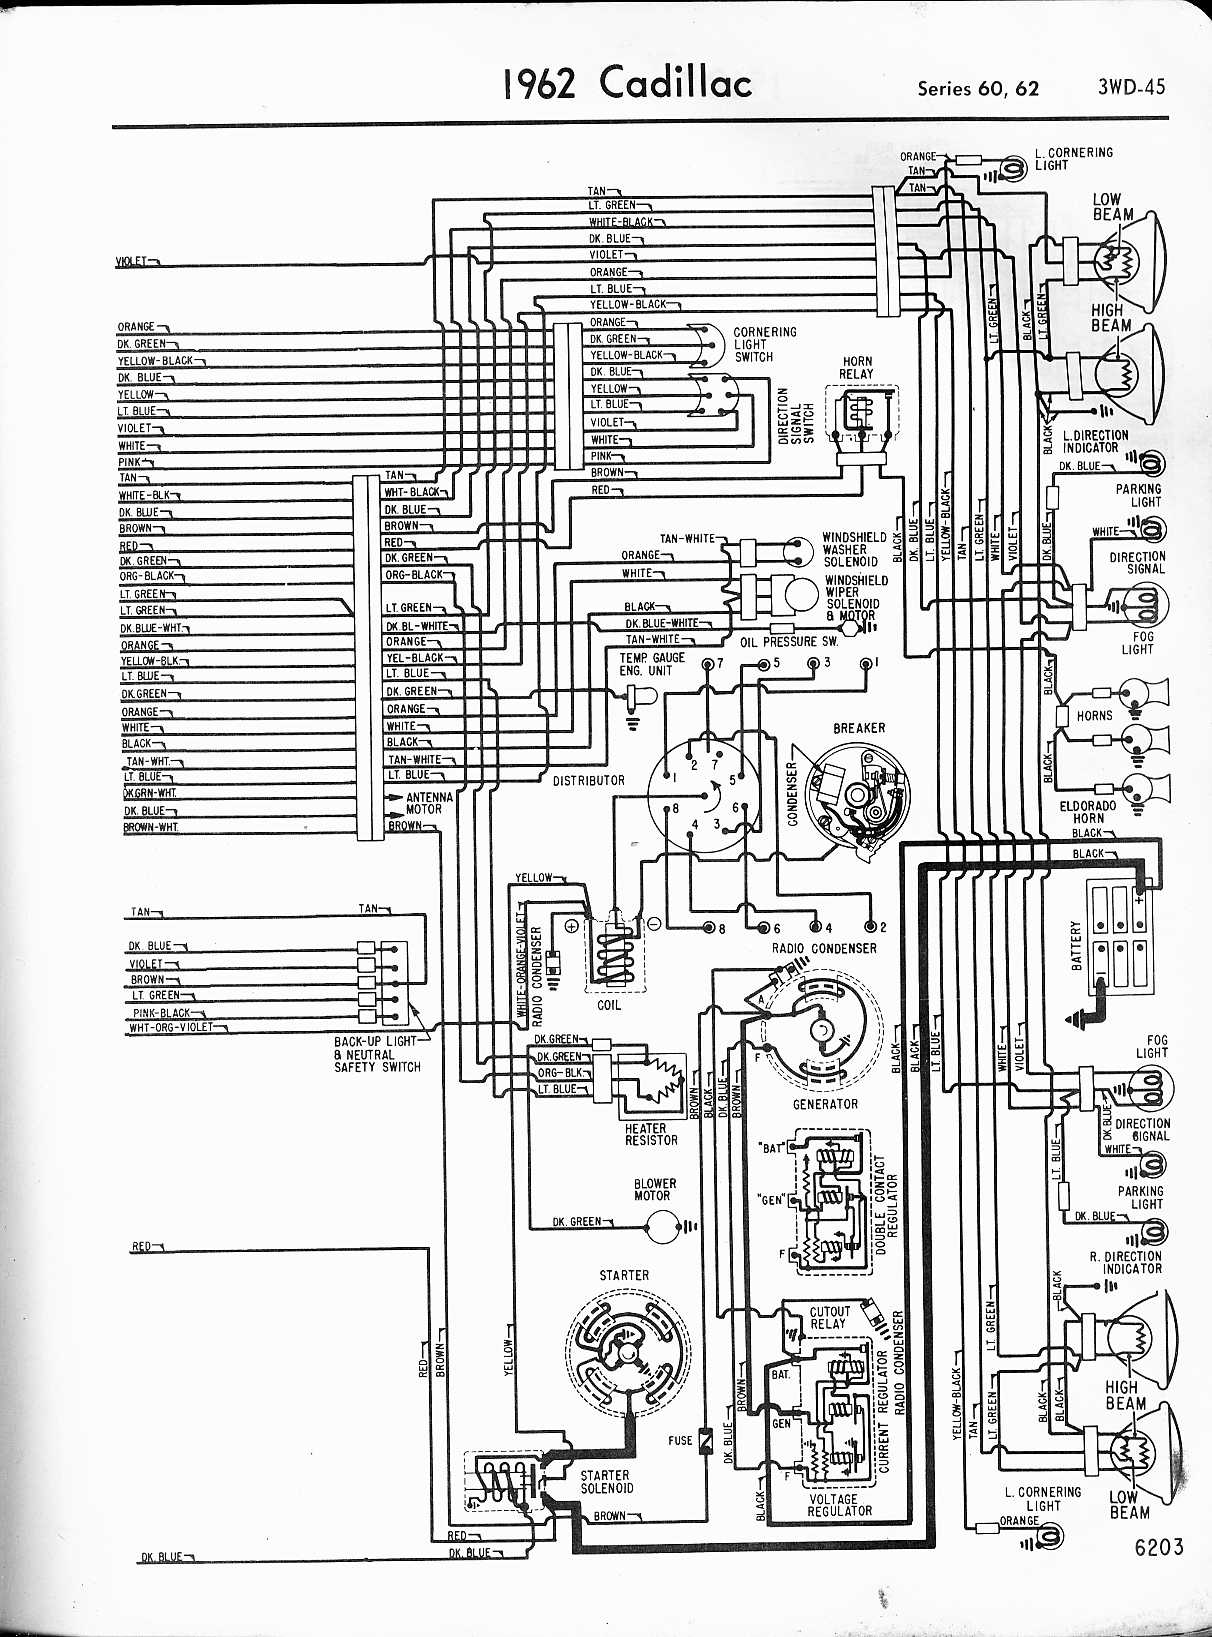 1963 cadillac wiring diagram all wiring diagram cadillac wiring diagrams 1957 1965 1950 cadillac wiring diagram 1963 cadillac wiring diagram